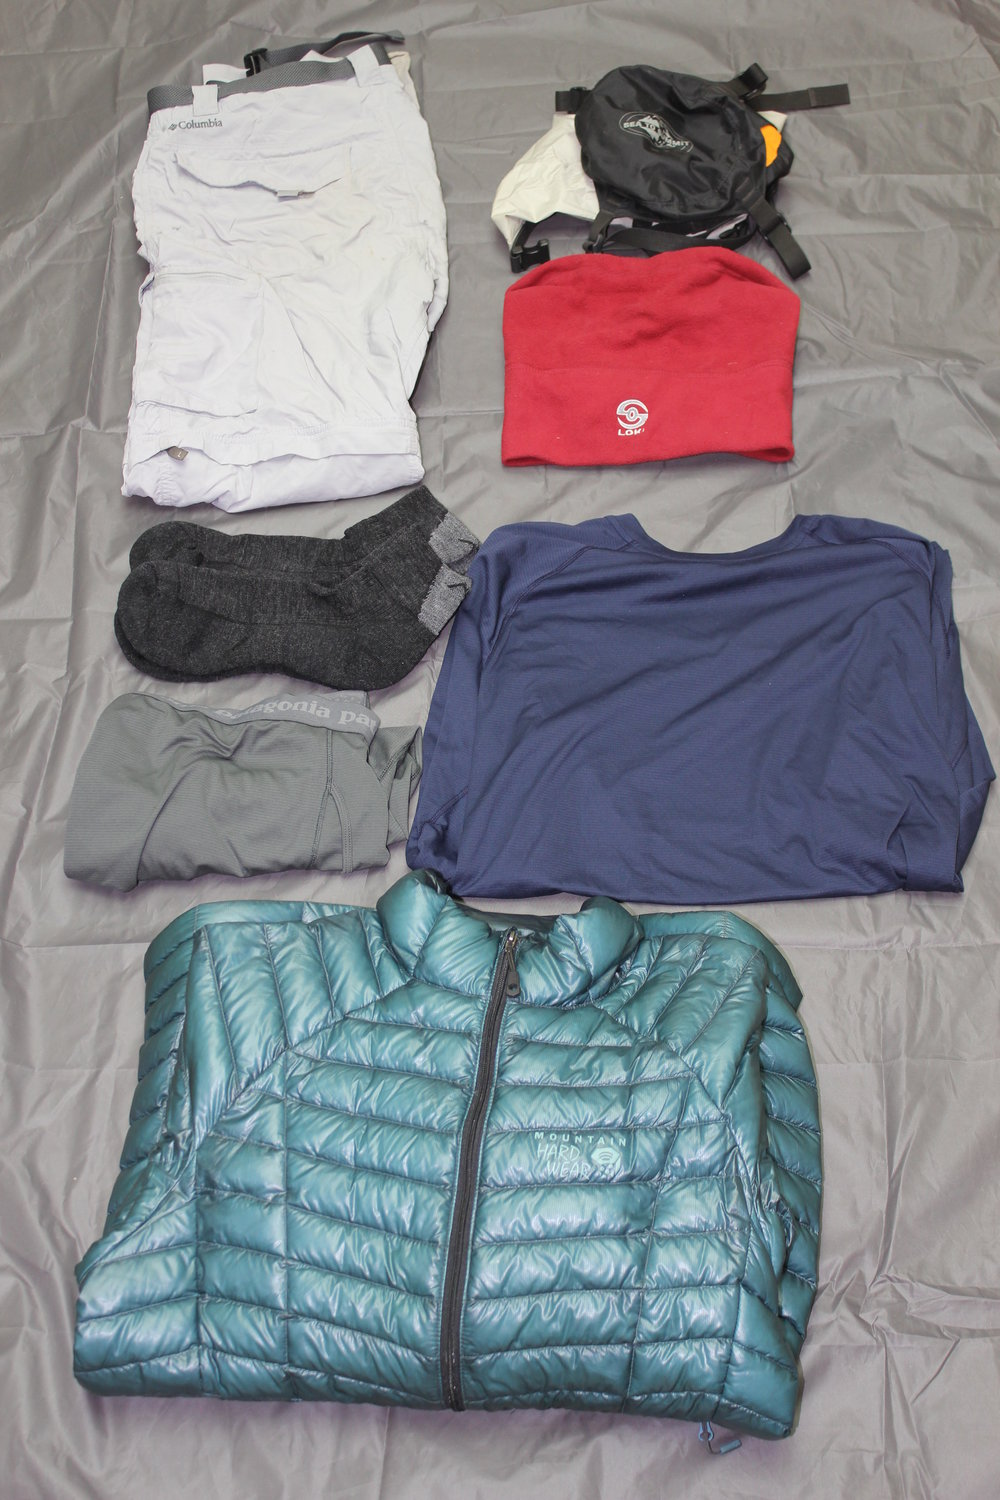 Columbia Zip-Off Pants  Patagonia Base Layers  Loki  Darn Tough Hike/Trek Socks  Sea-to-Summit Dry Sack